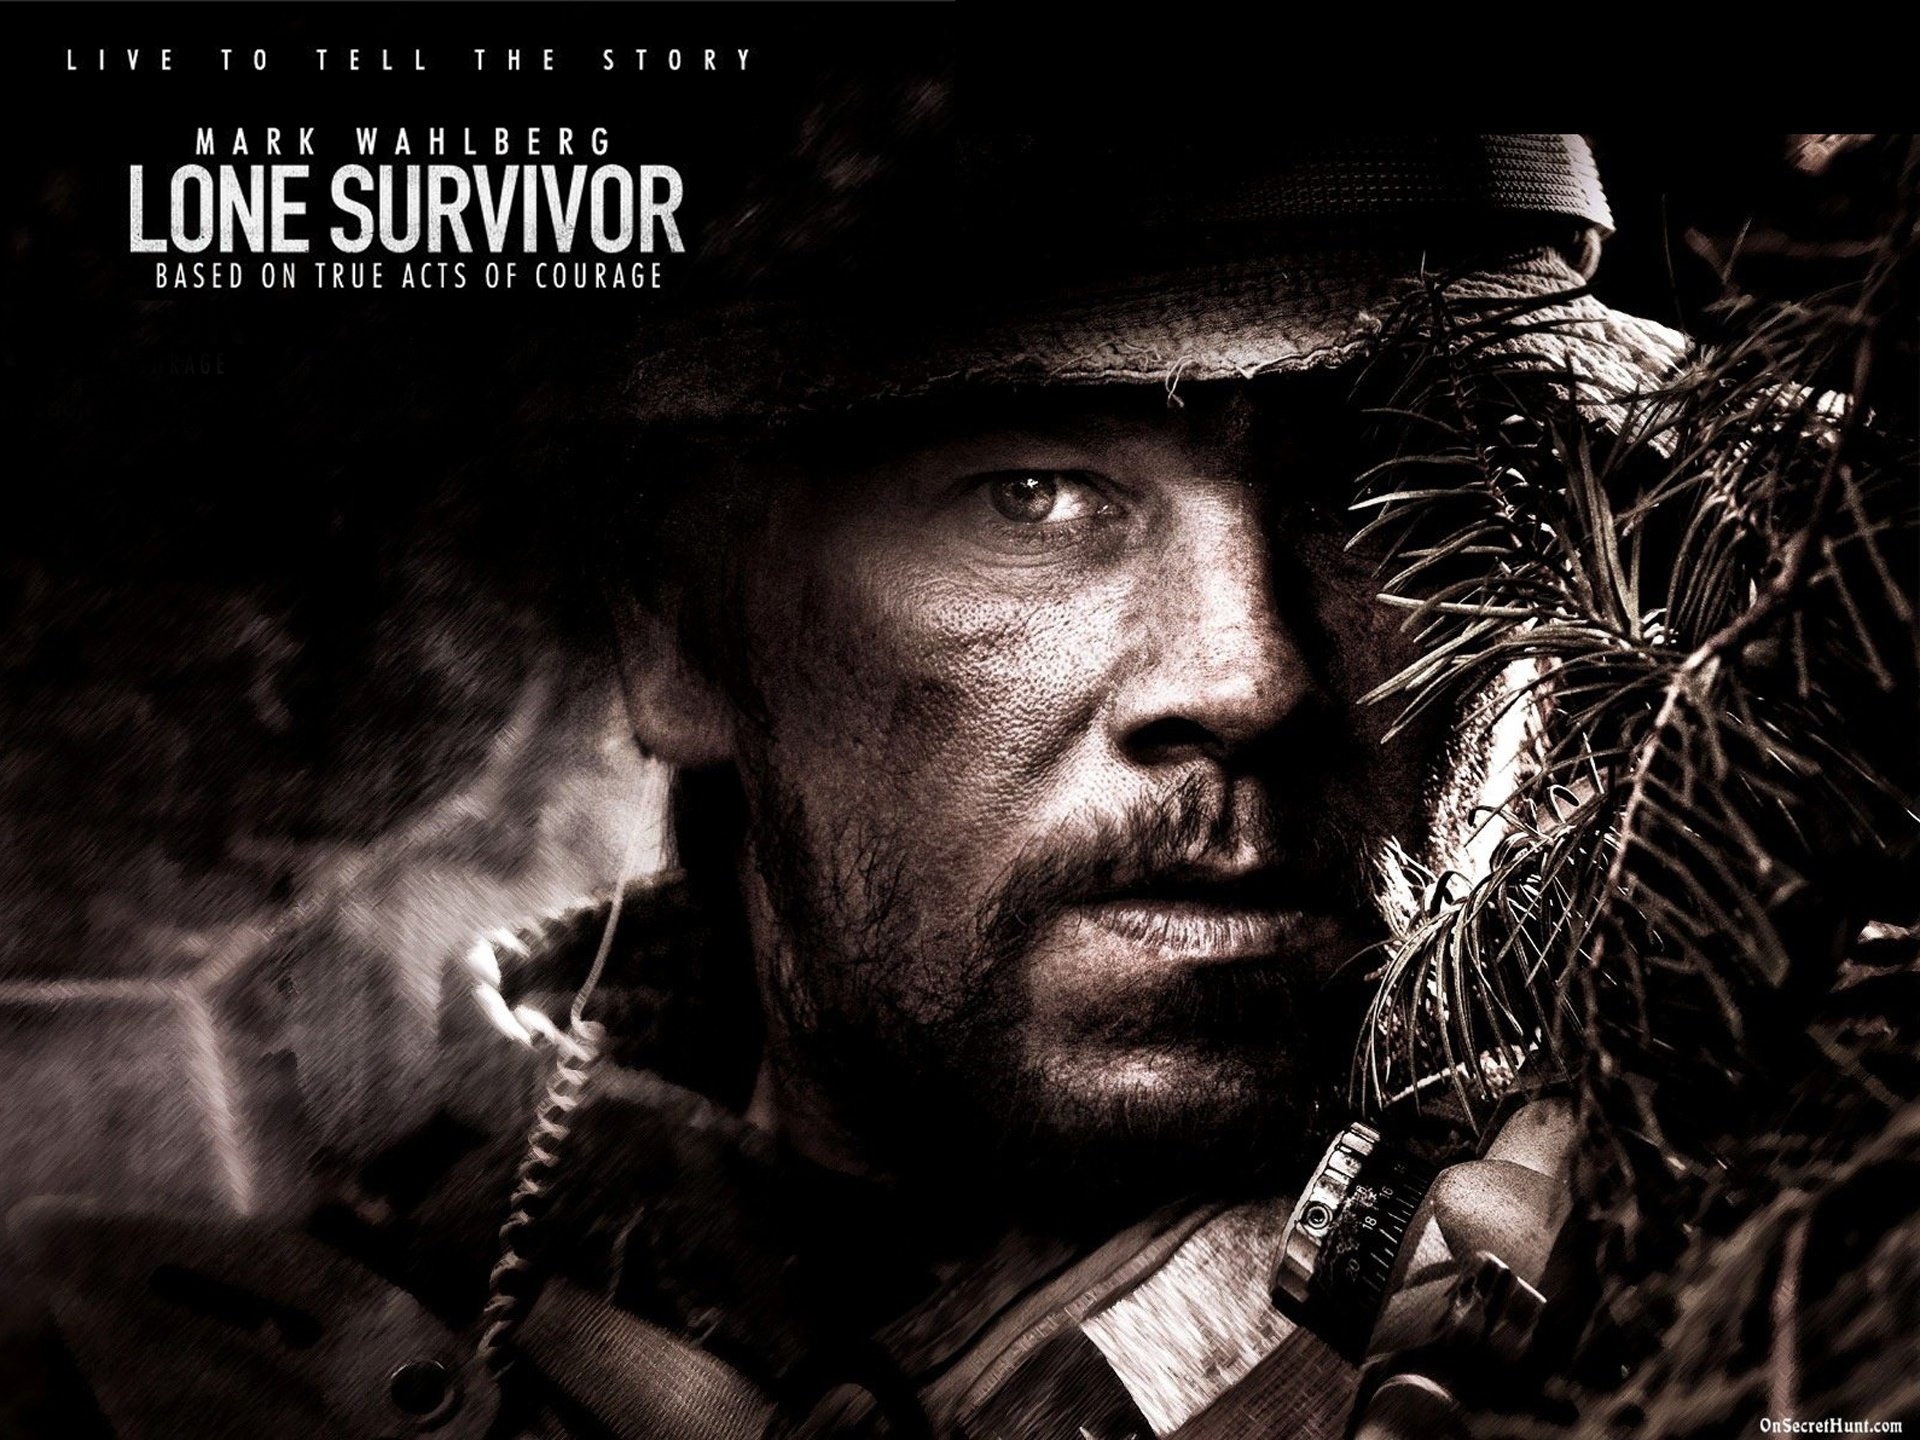 LONE SURVIVOR action biography drama military seal soldier ...